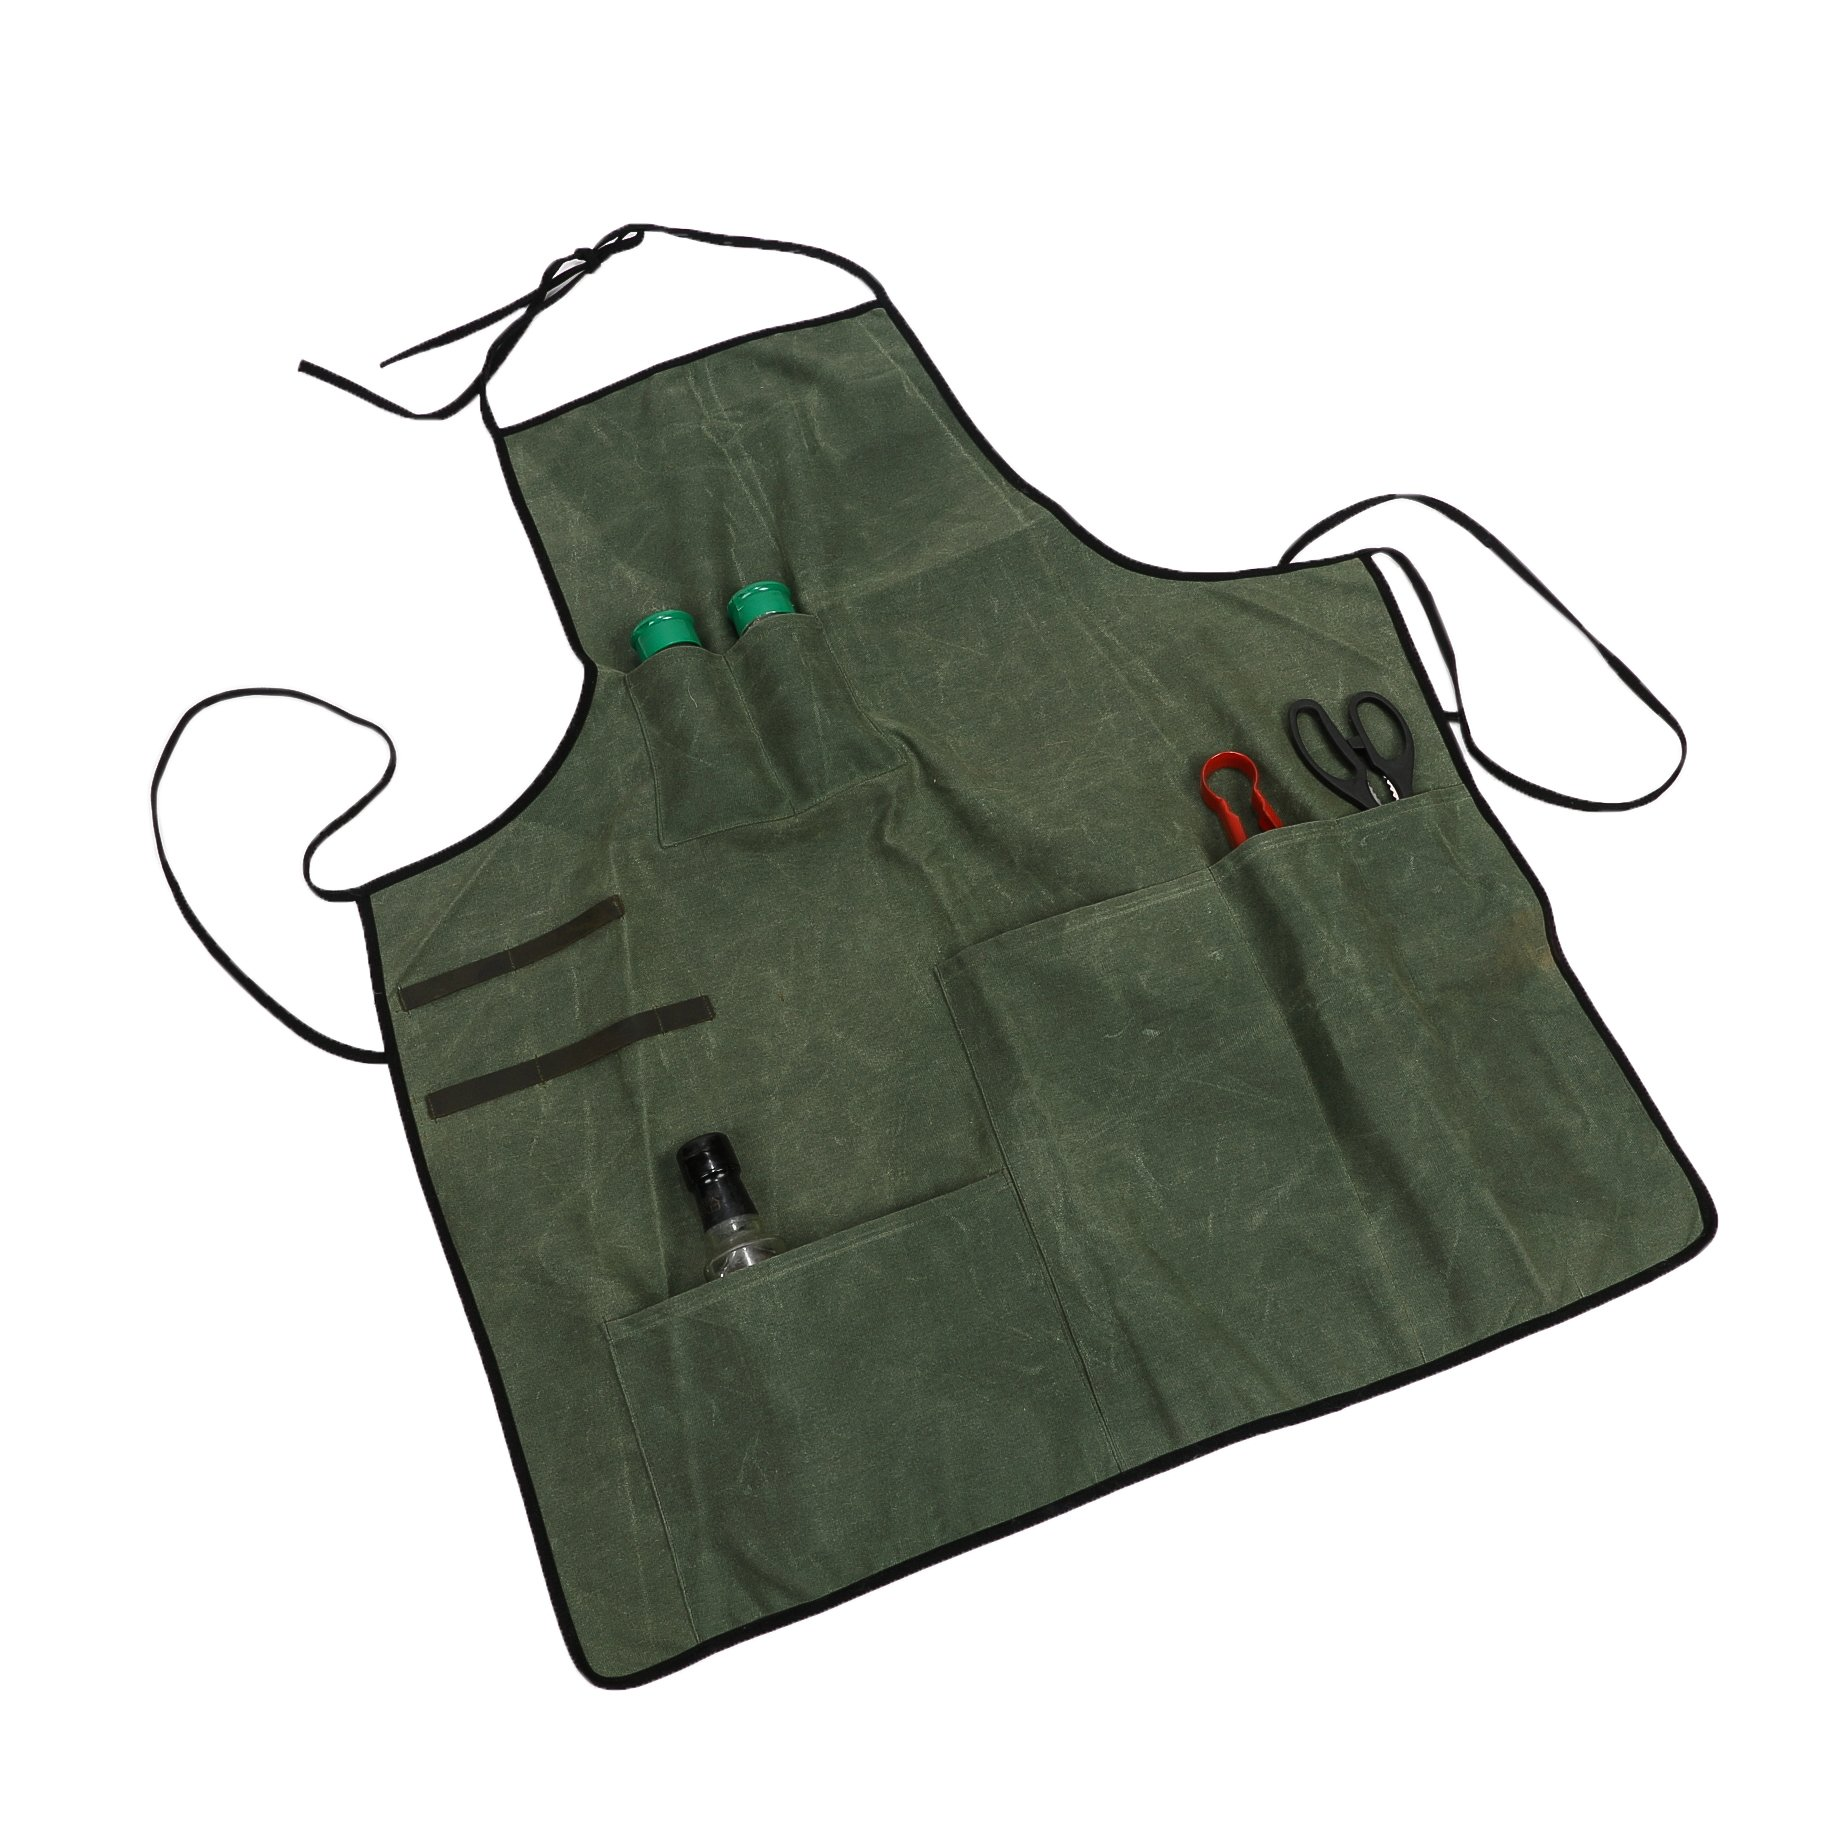 Waxed Canvas Workshop Apron Tool Apron Heavy-Duty Multi-Purpose Utility Cargo Apron Coverall for Waiter Waitress Men & Women HSW-086-US